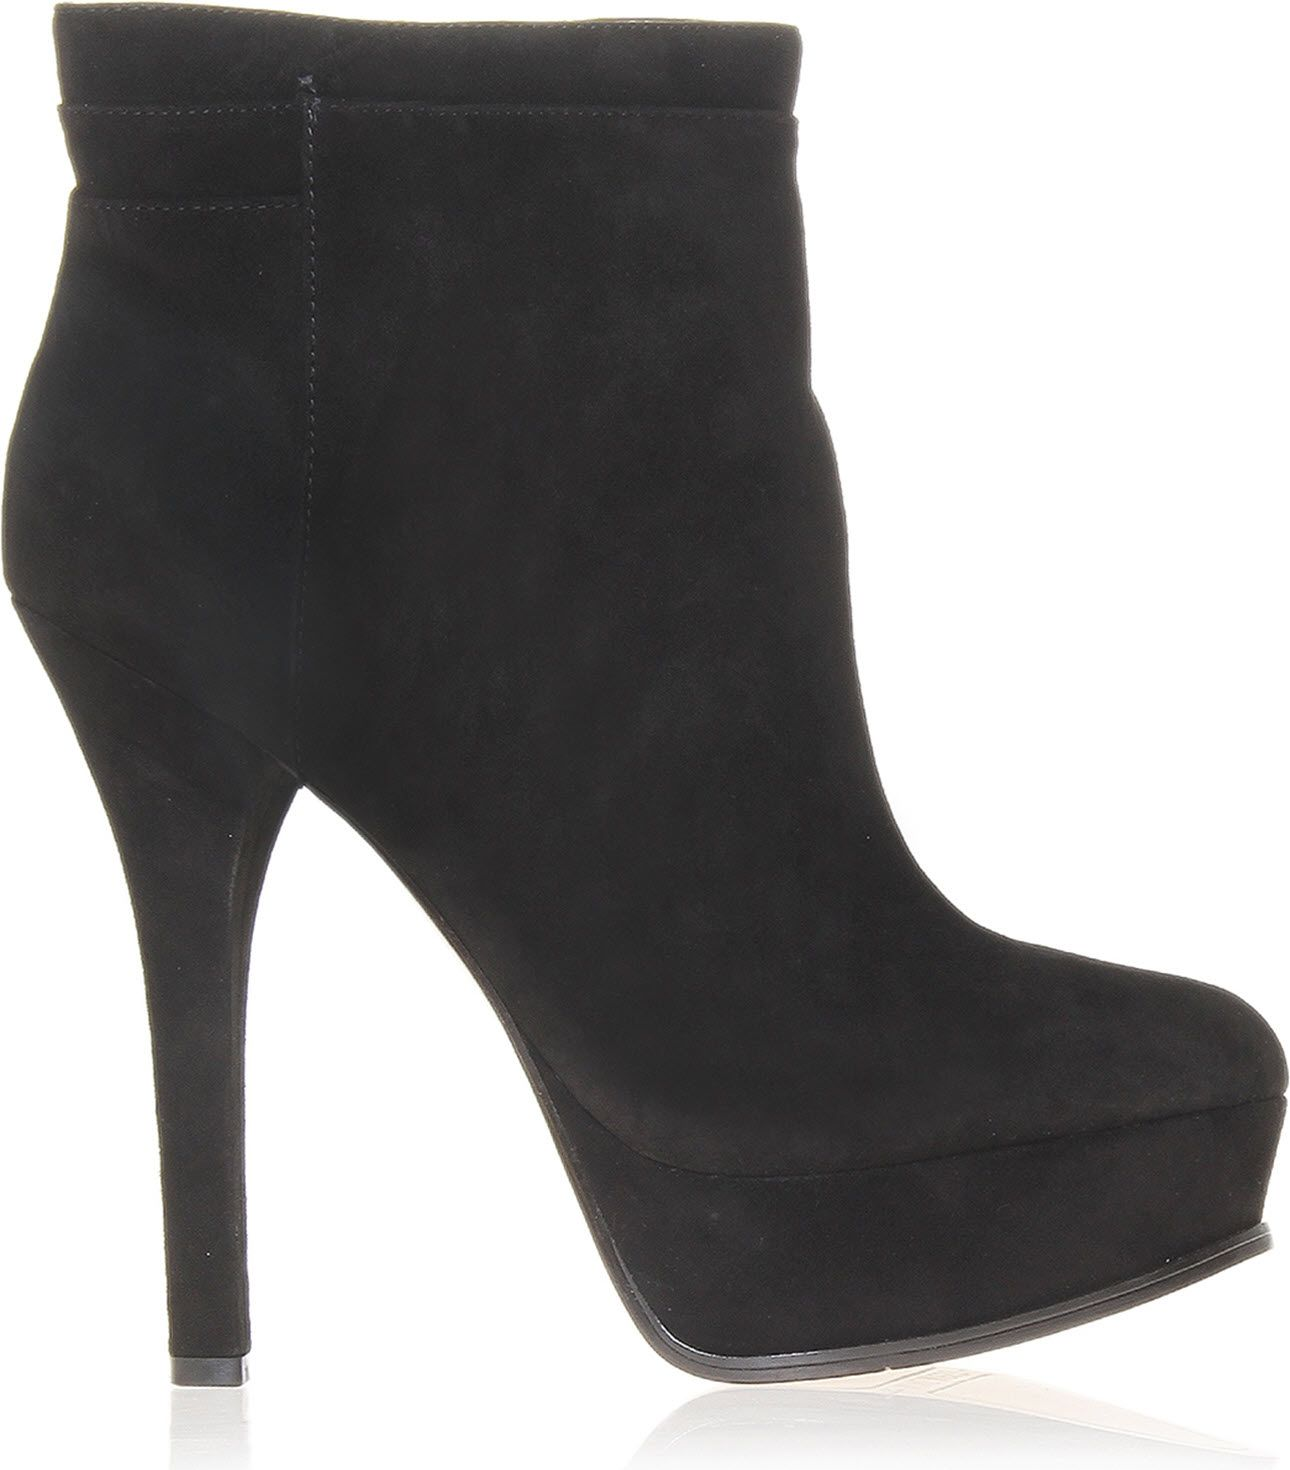 nine west likeaqueen suede ankle boots in black lyst